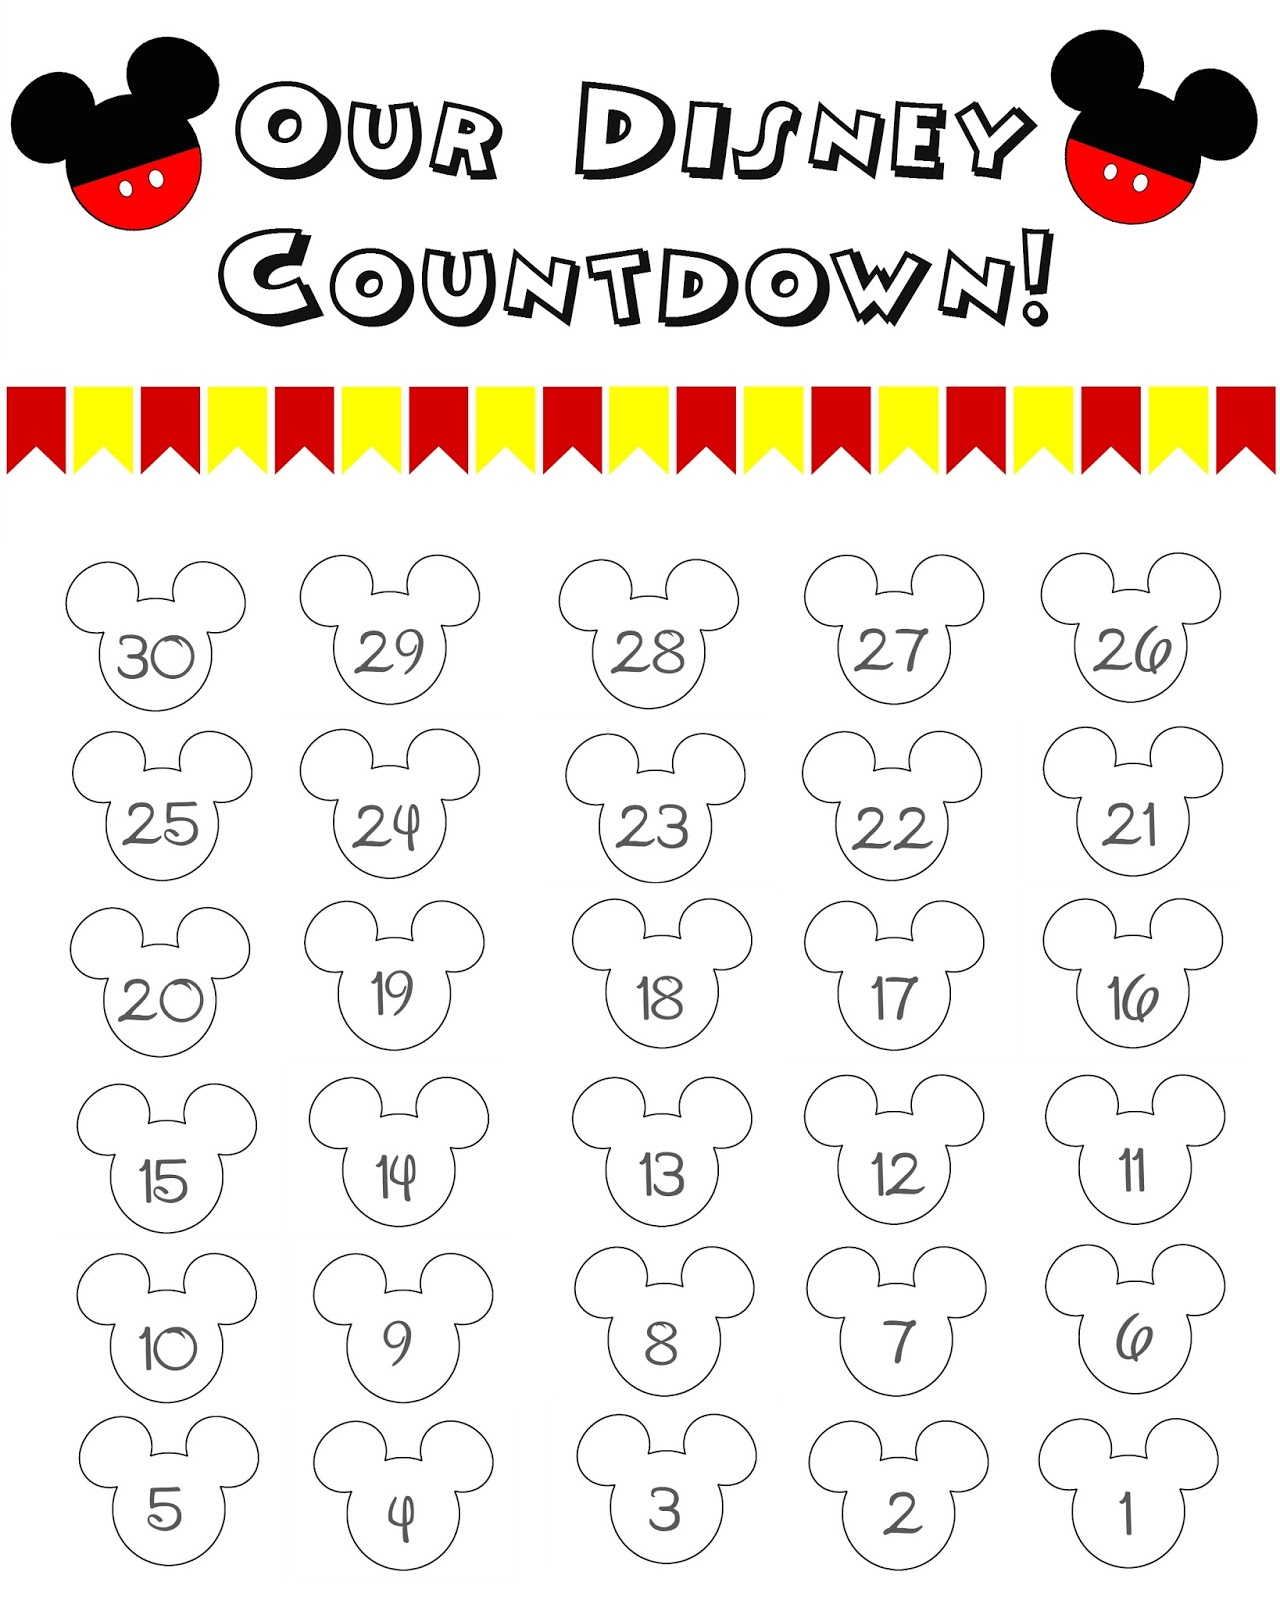 Countdown Calendar, Disney World Countdown Calendar, Disney Printable ...